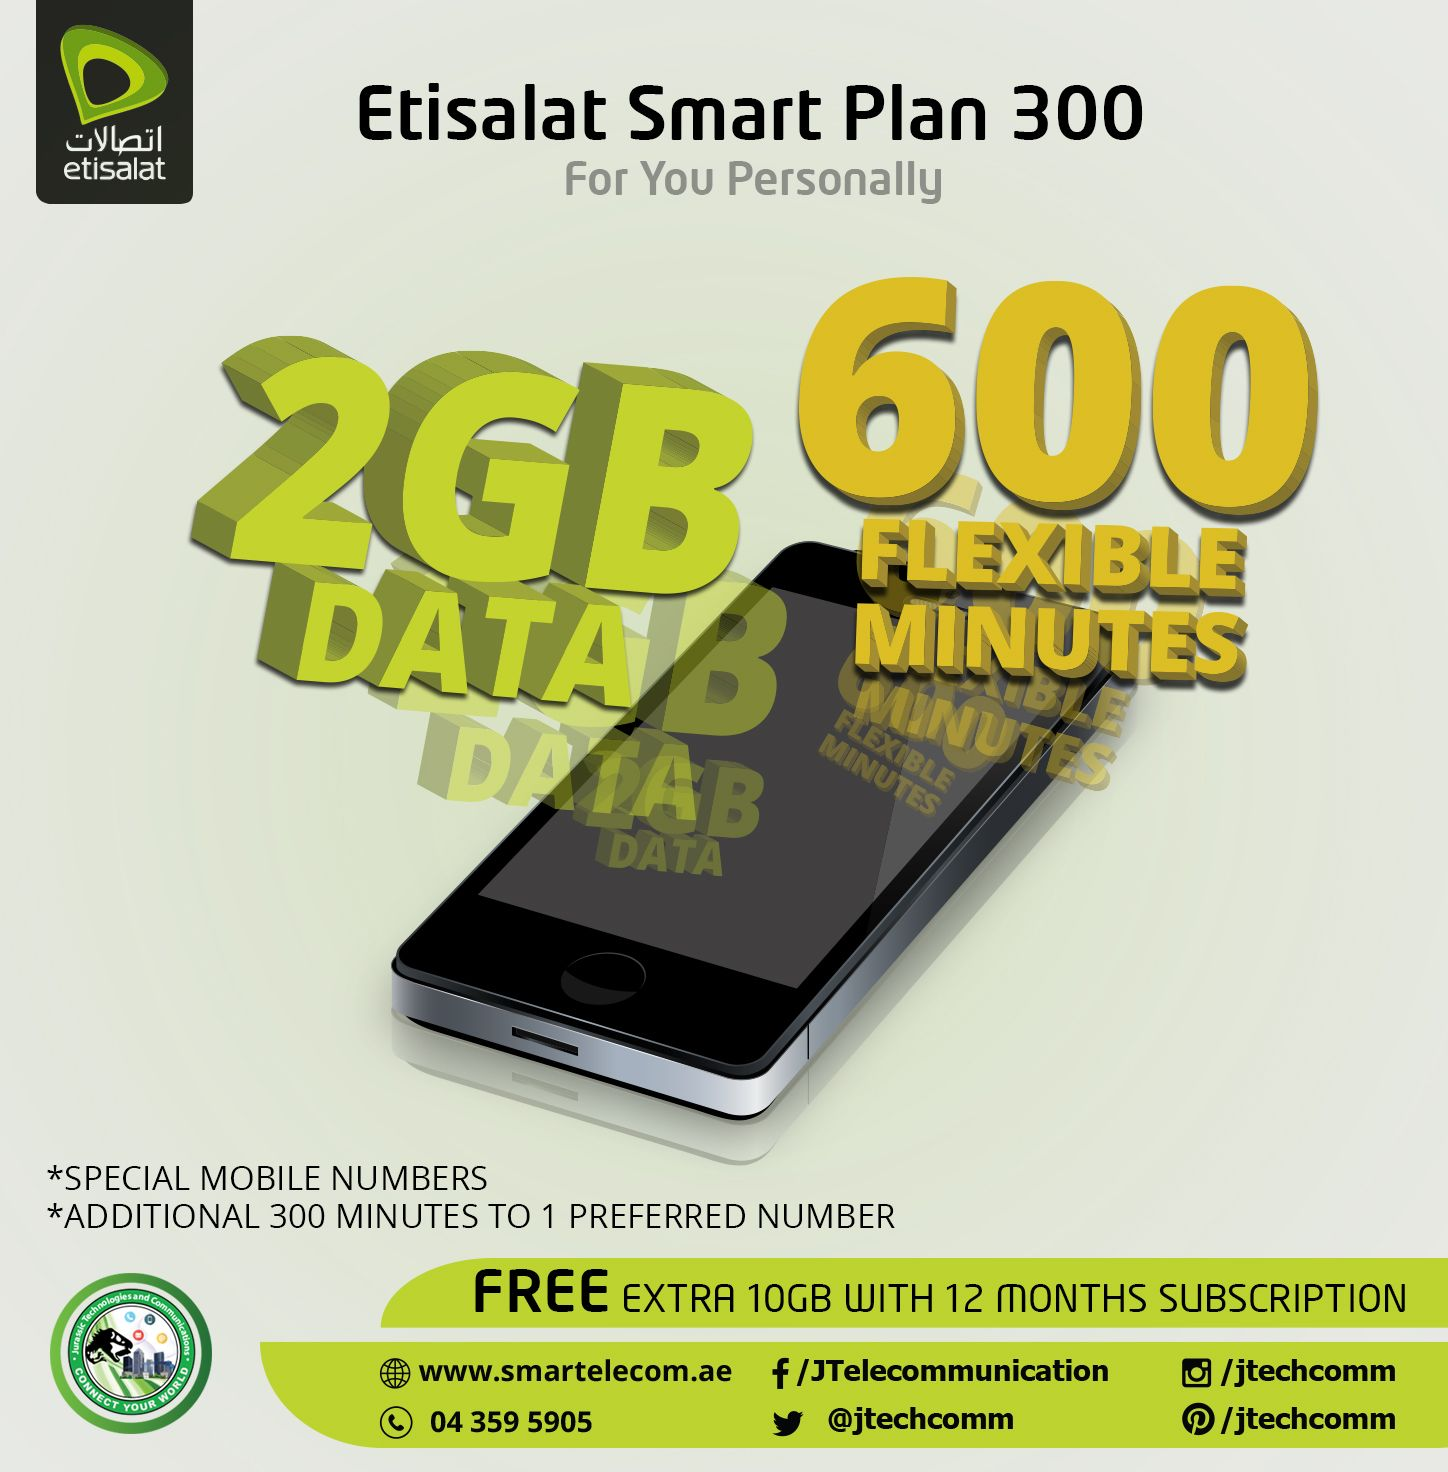 9 Best Postpaid Plans images in 2016 | How to plan, Uae, Business